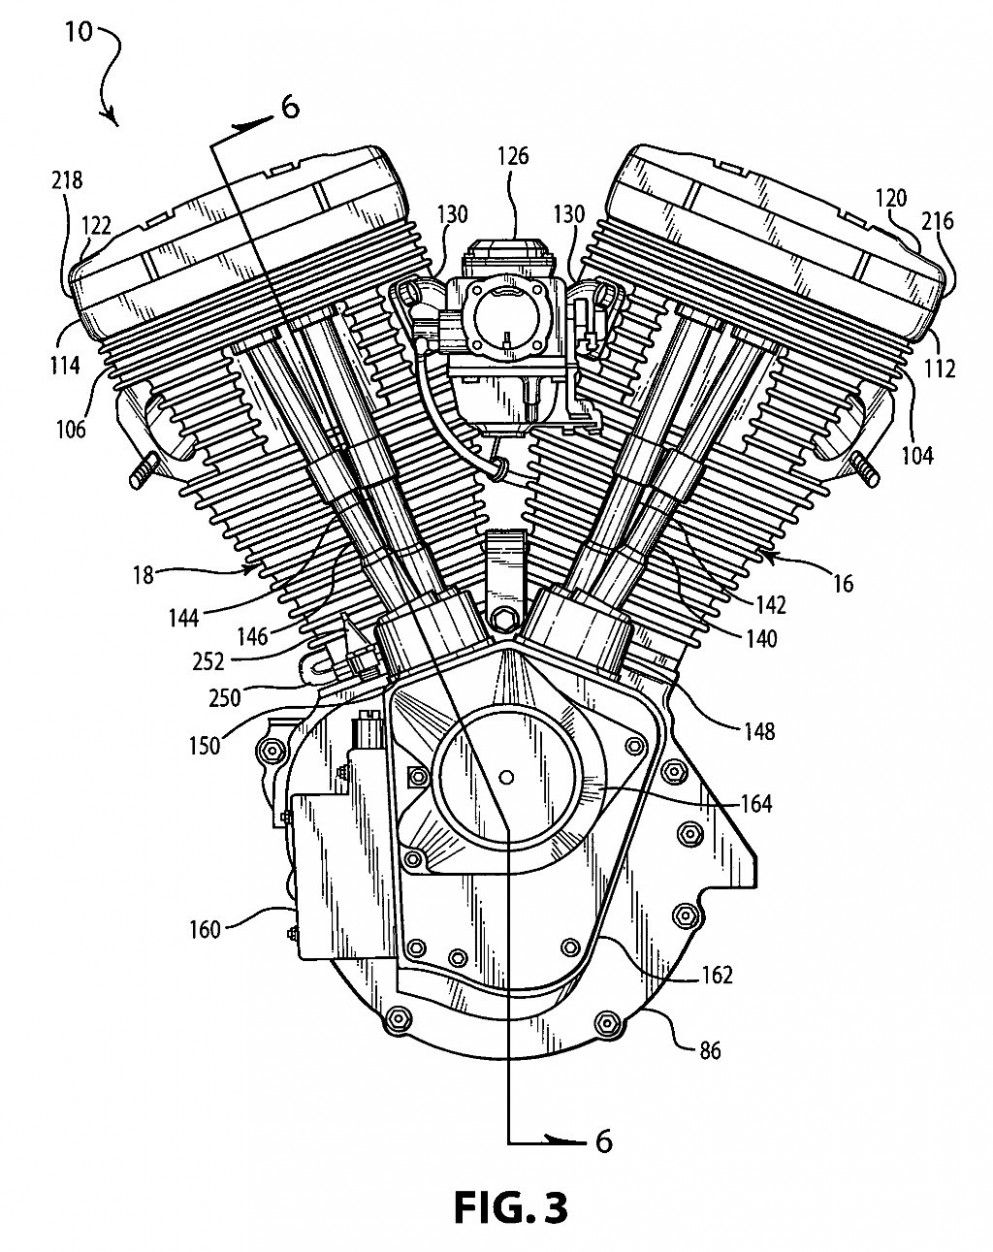 Harley Davidson Twin Cam Engine Diagram Review In 2020 Harley Davidson Engines Harley Davidson Harley Davidson Images